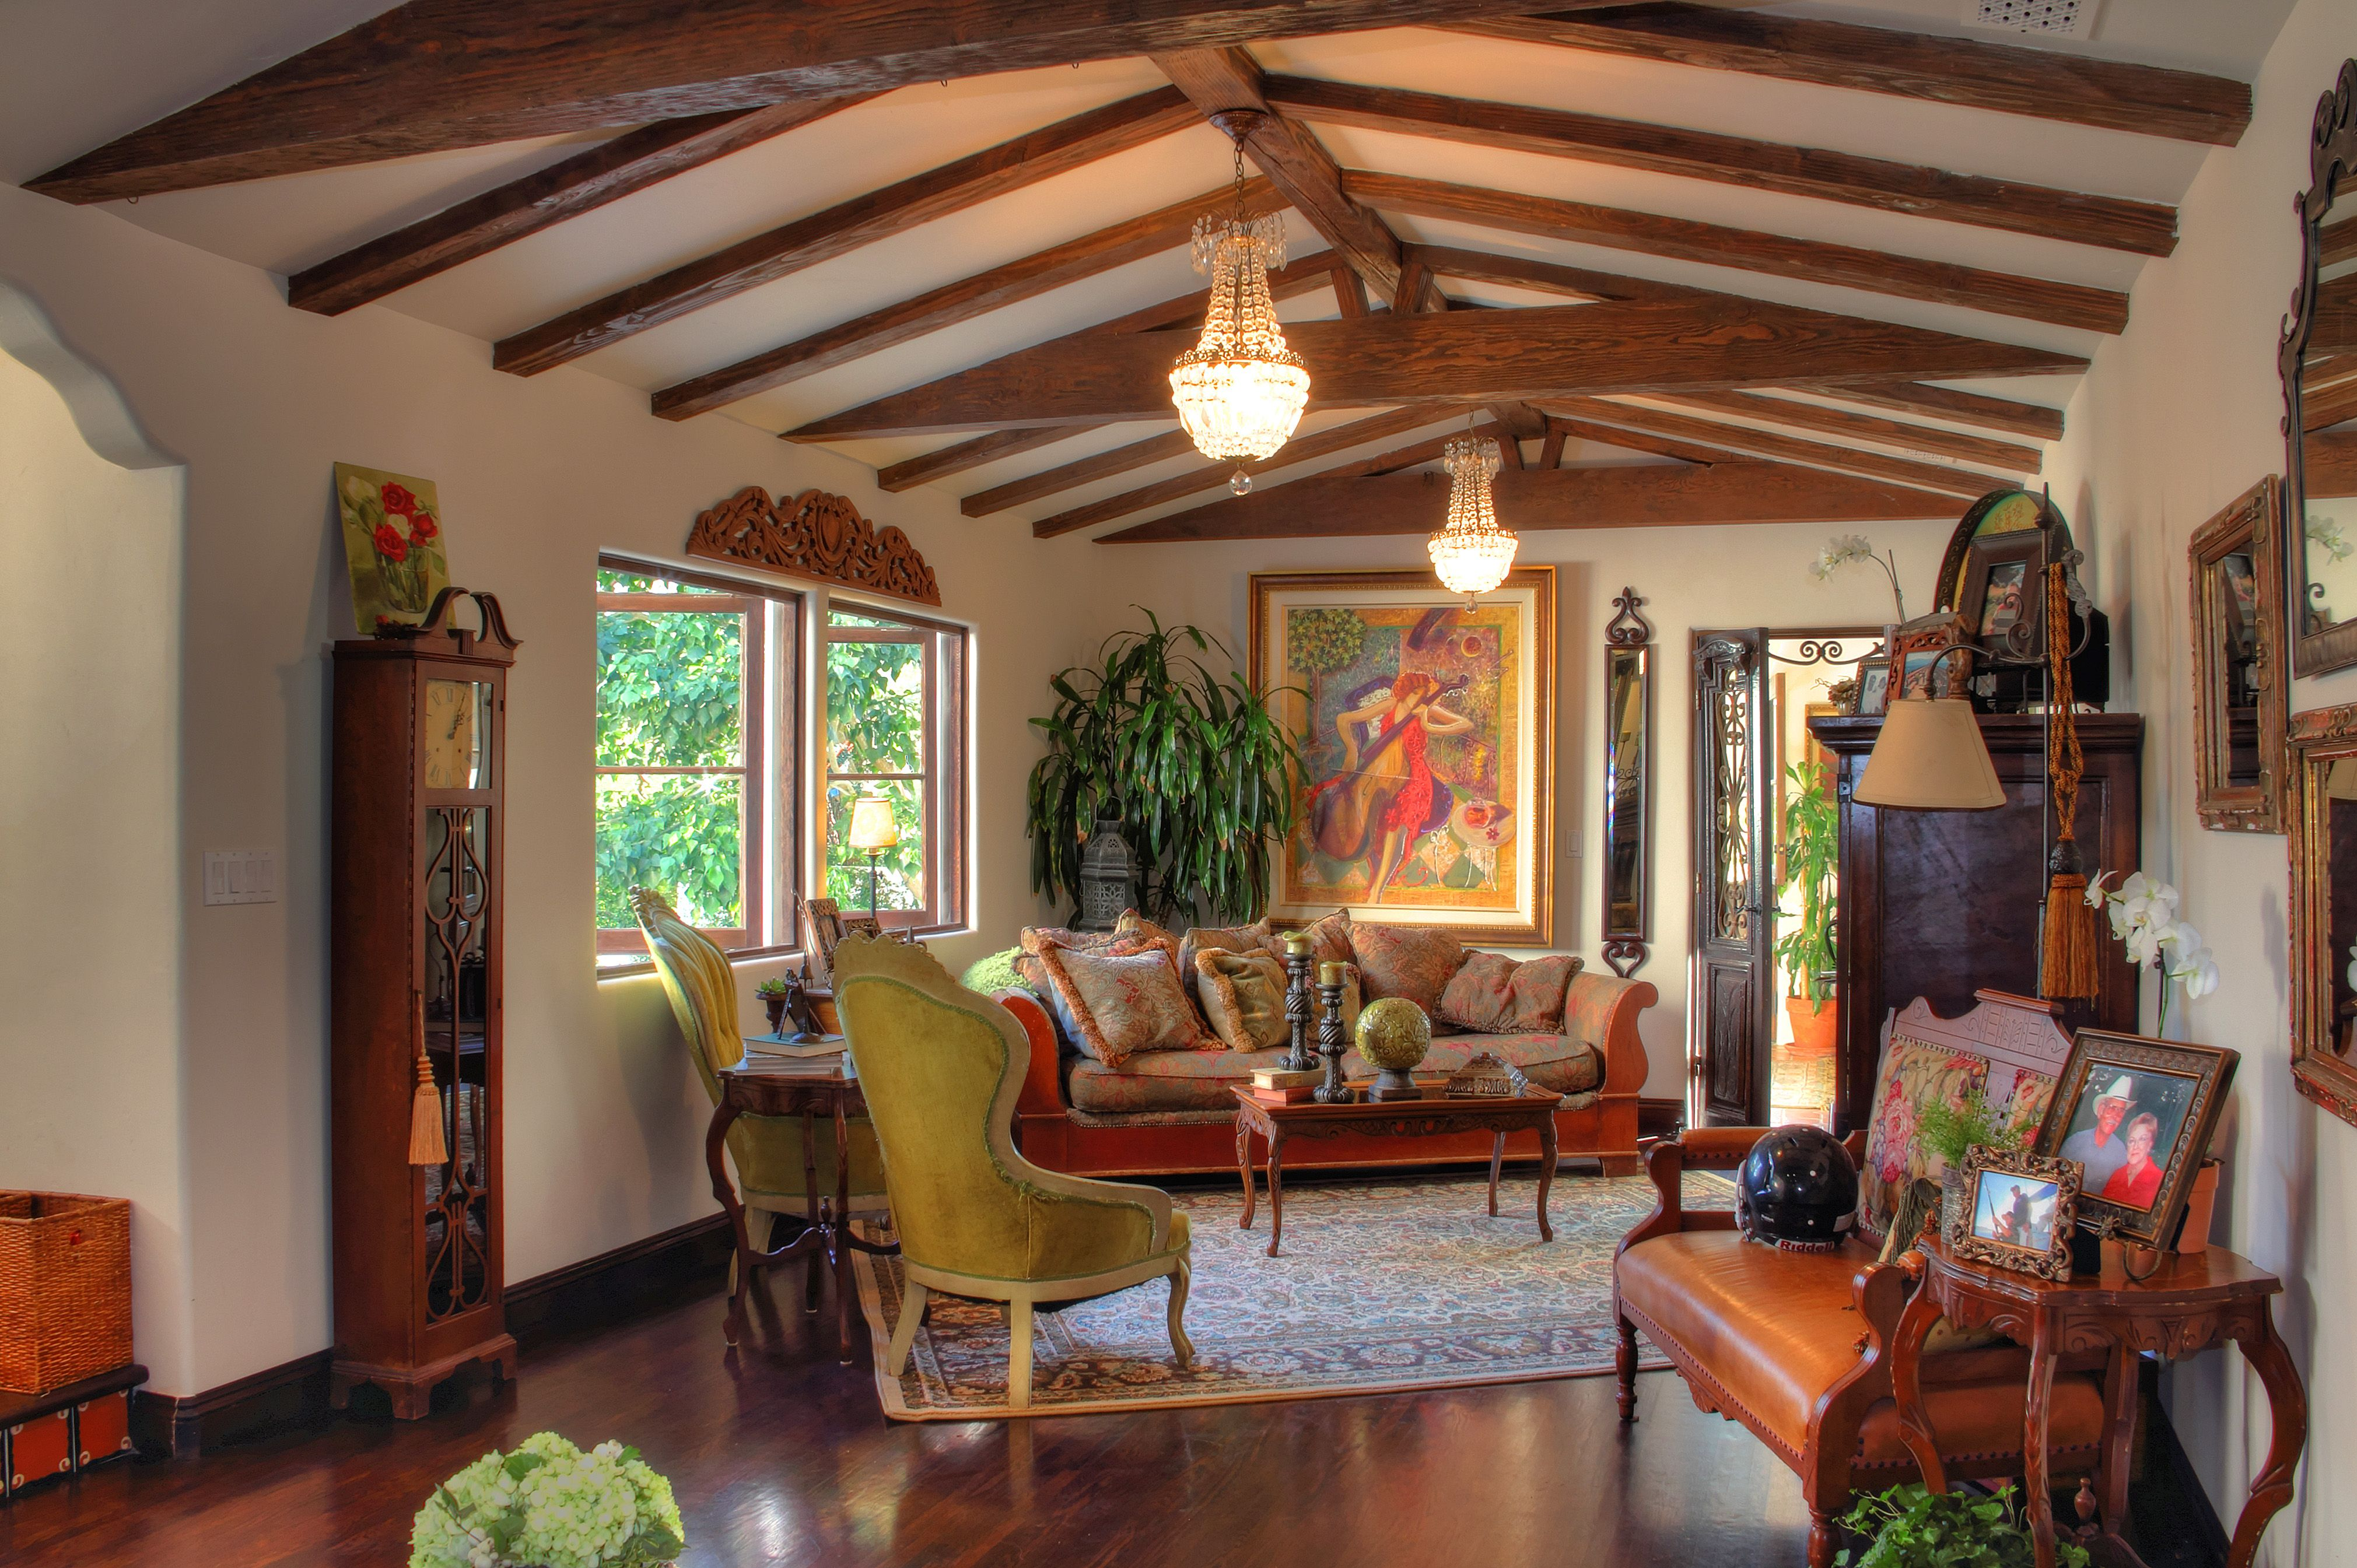 South Bay Digs Sweet Architecture Interior Design Old Los Angeles Spanish Style